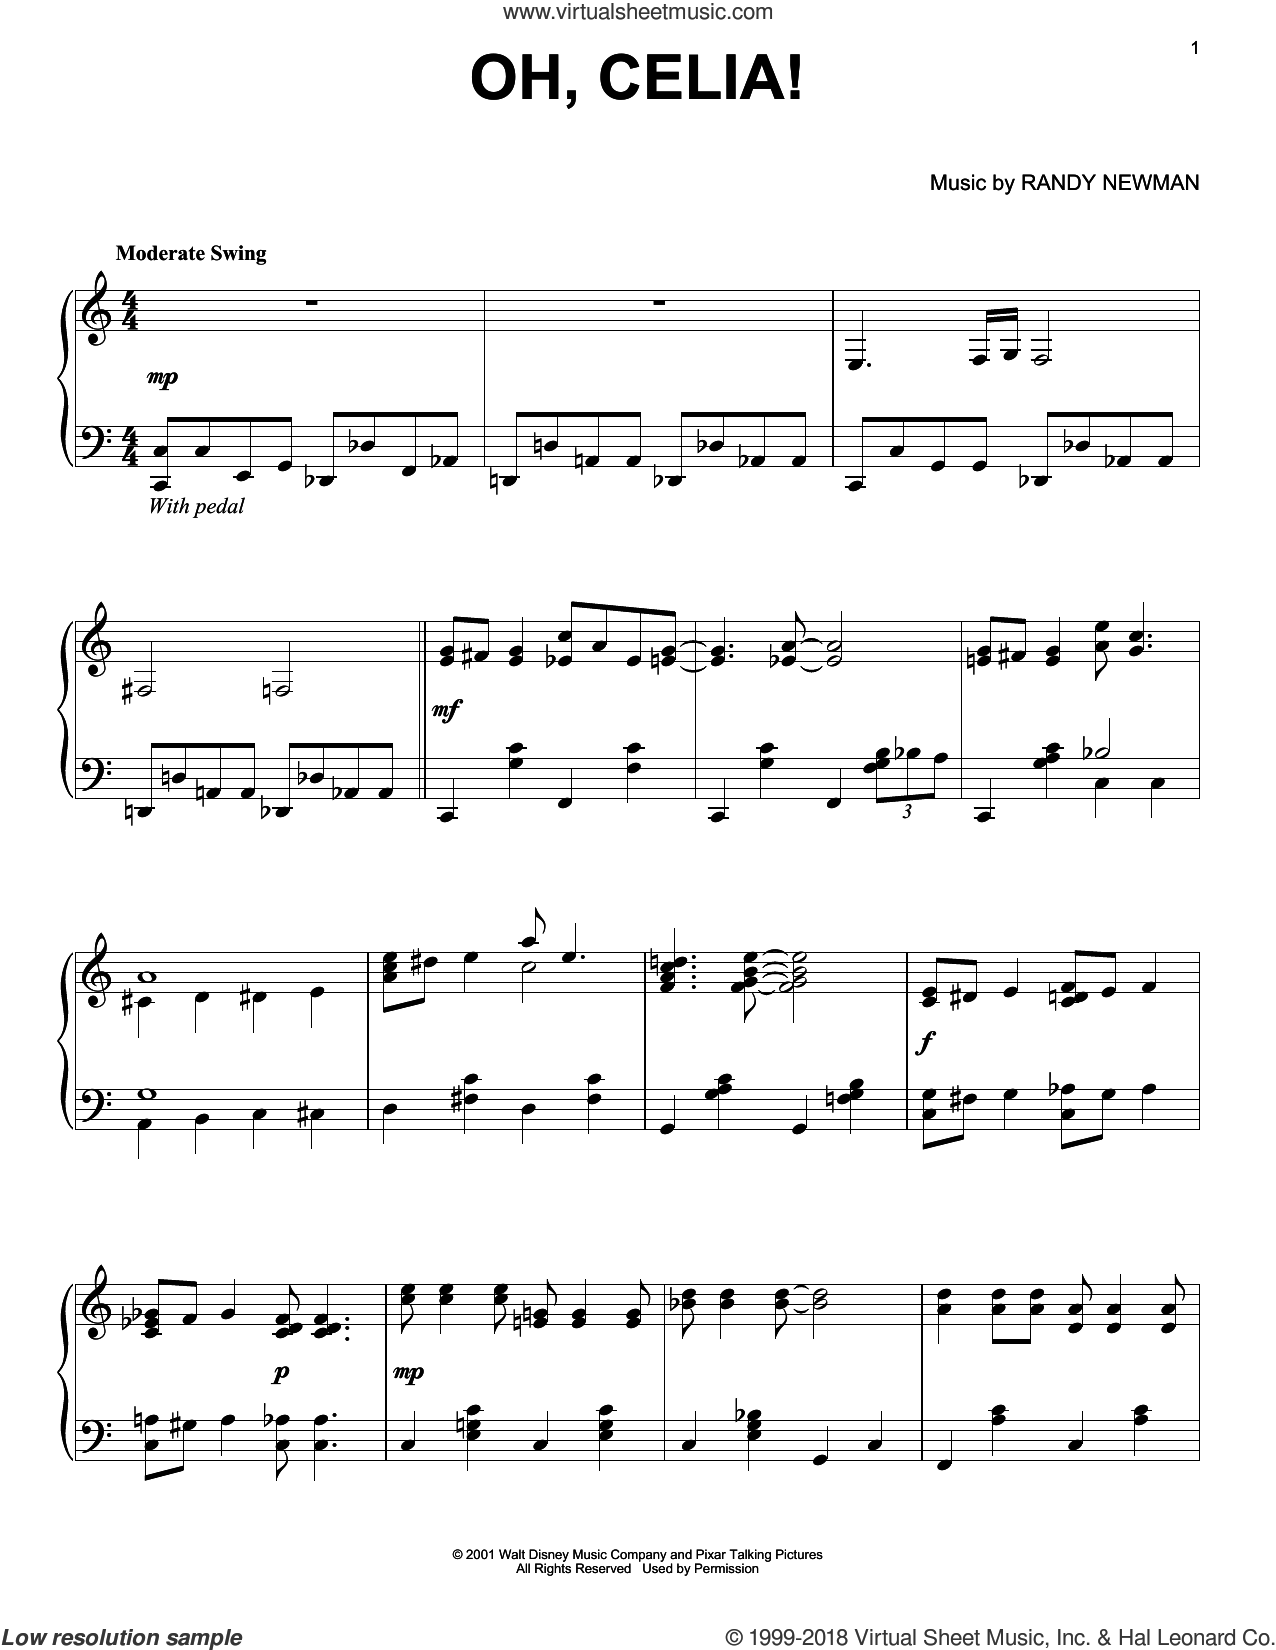 Oh, Celia! sheet music for piano solo by Randy Newman, Monsters University (Movie) and Monsters, Inc. (Movie), intermediate skill level